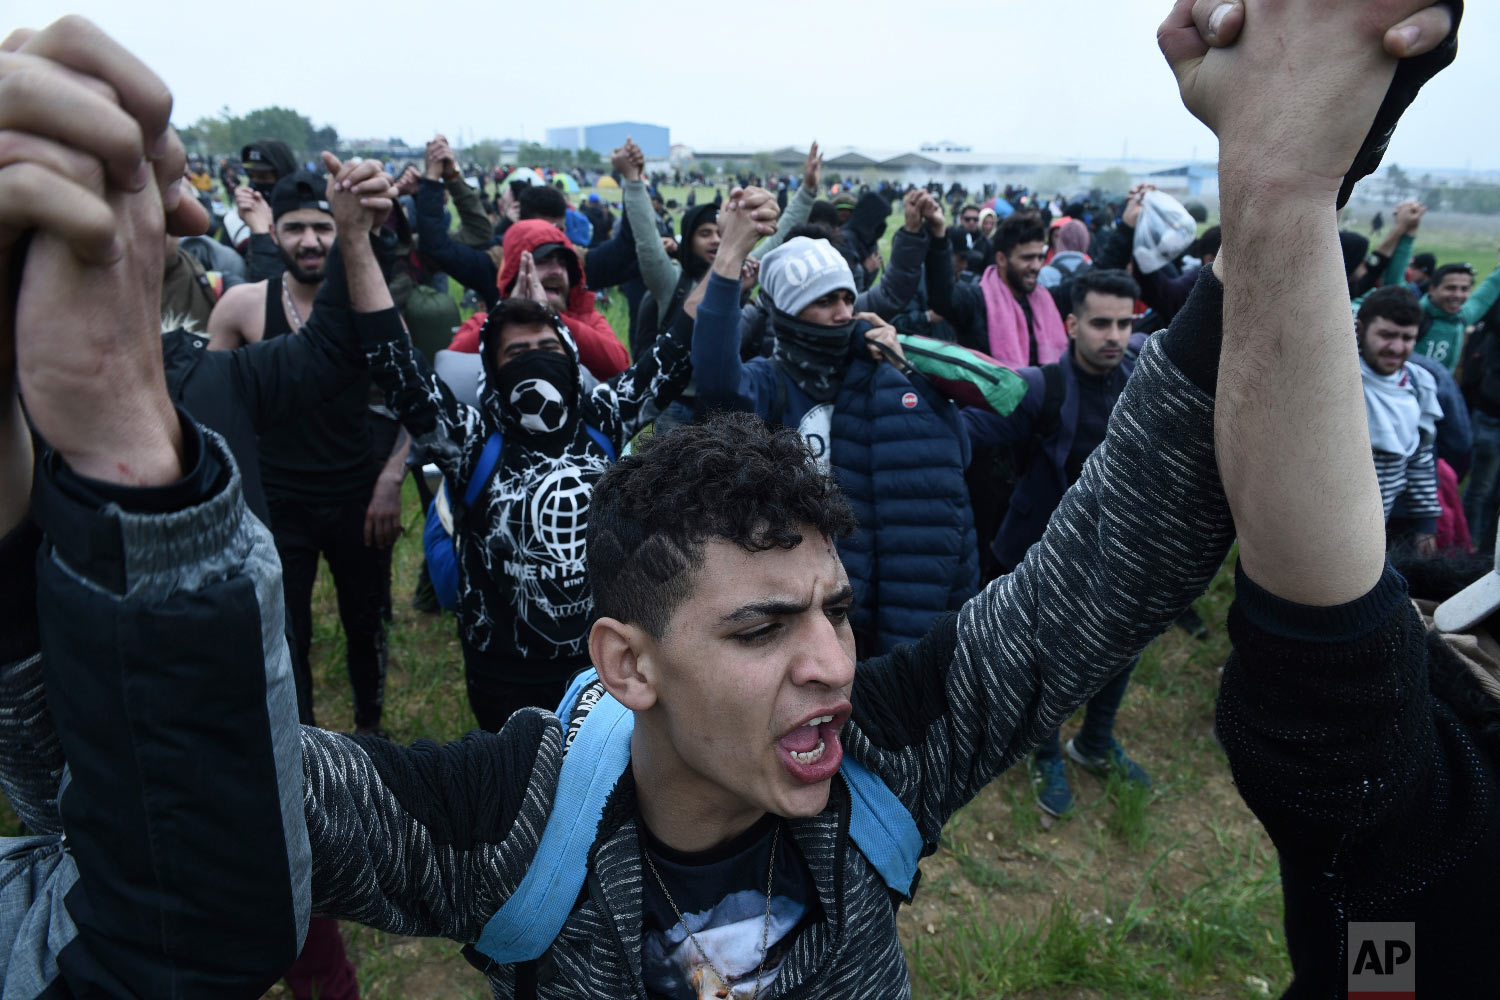 Protesting migrants shout slogans during a rally outside a refugee camp in the village of Diavata, west of Thessaloniki, northern Greece, Saturday, April 6, 2019. (AP Photo/Giannis Papanikos)